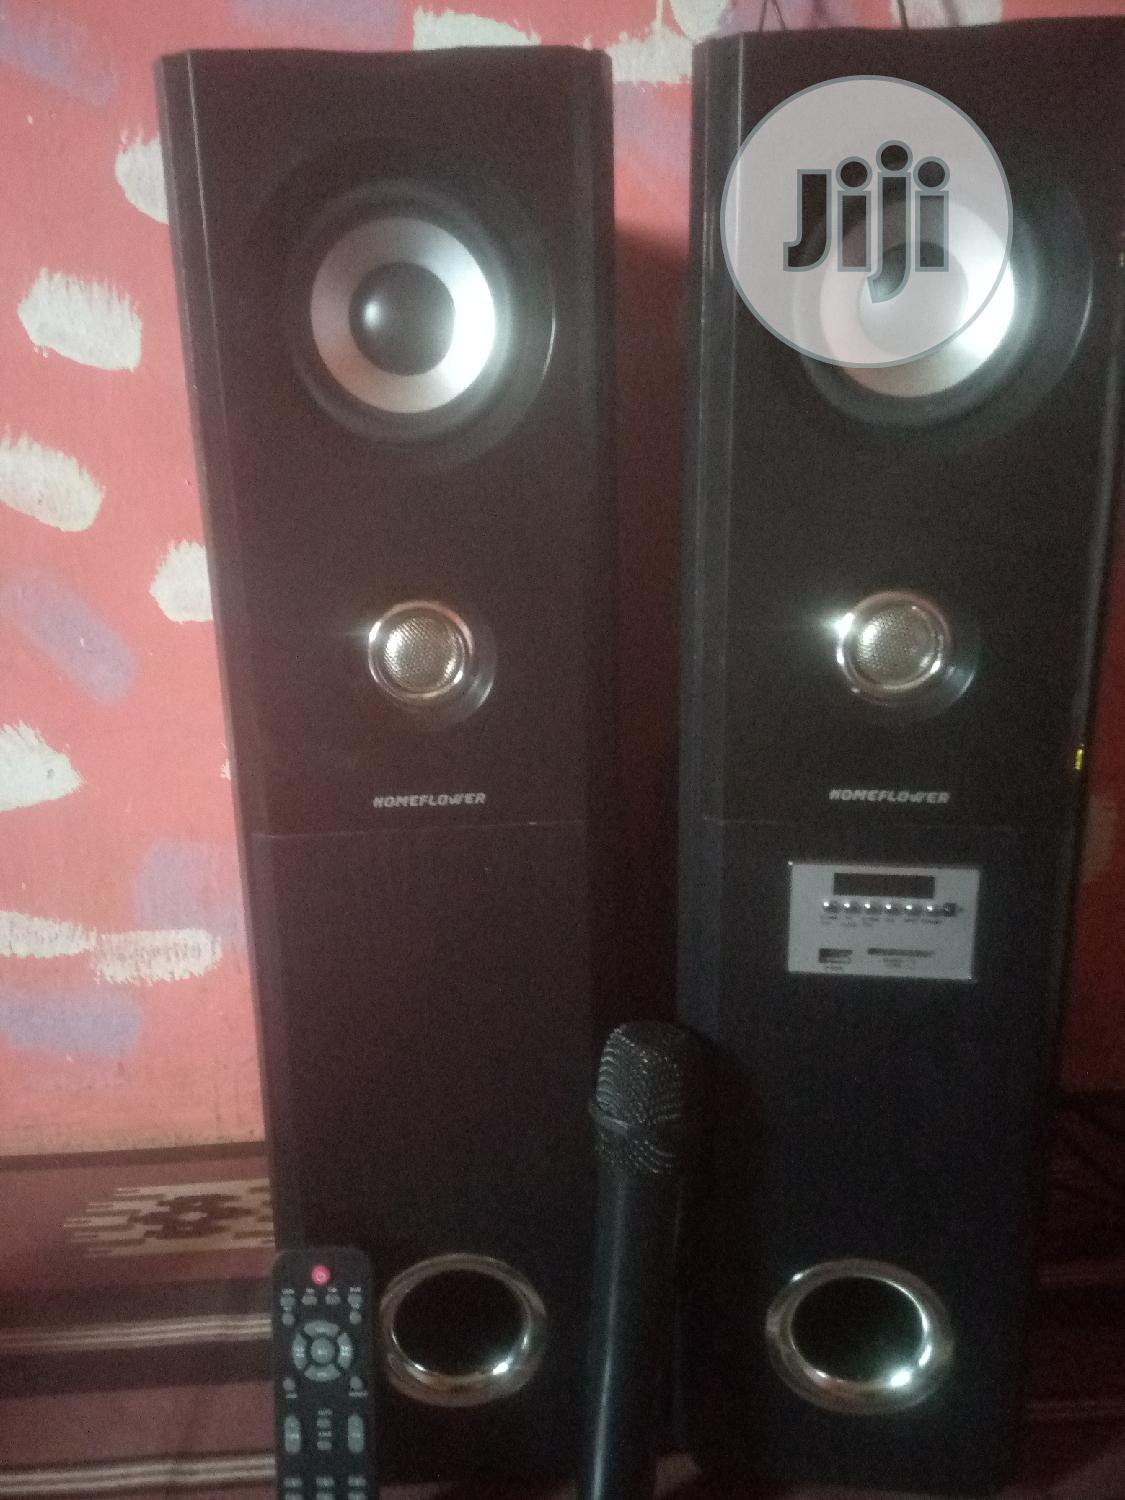 Archive: Home Appliance